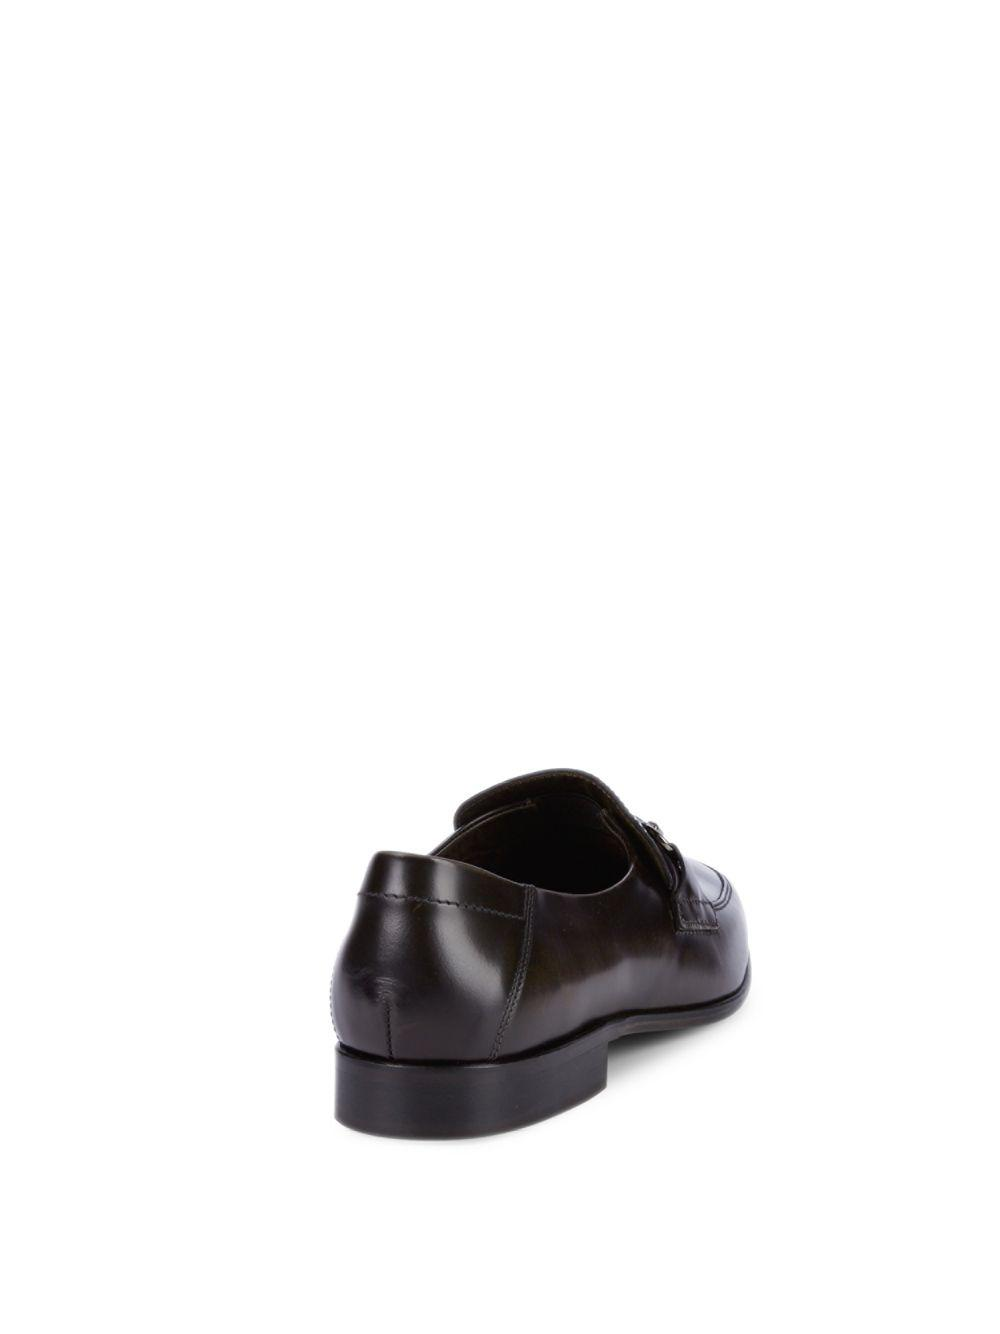 60d8680c986 Lyst - Bruno Magli Leather Horsebit Loafers in Gray for Men